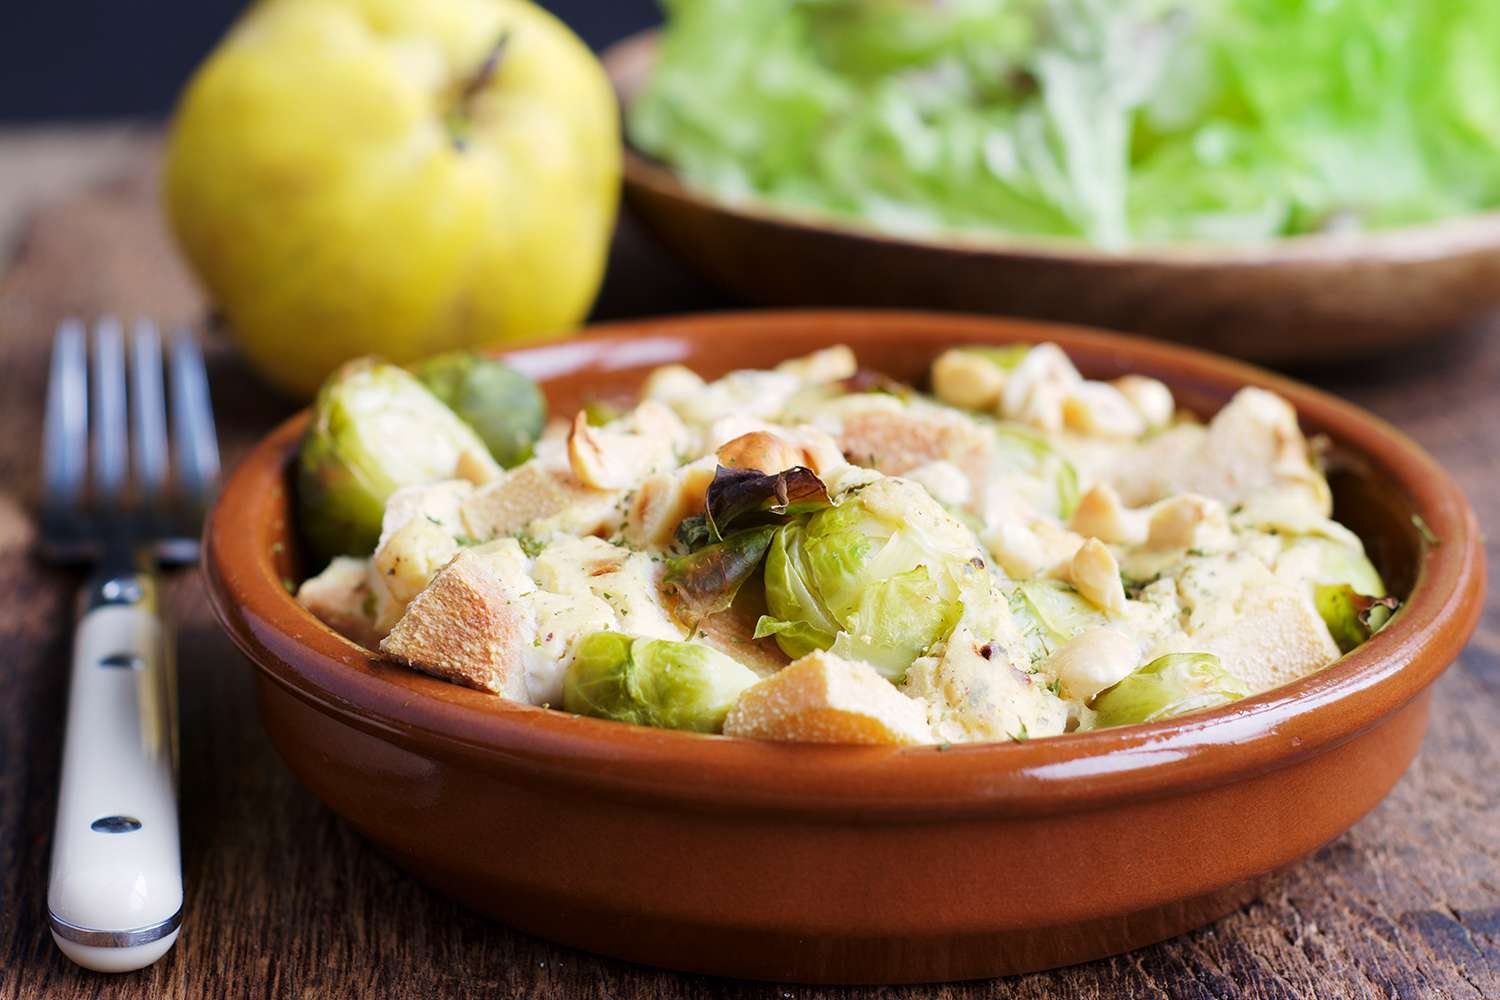 Brussels sprouts quince gratin with hazelnut sauce